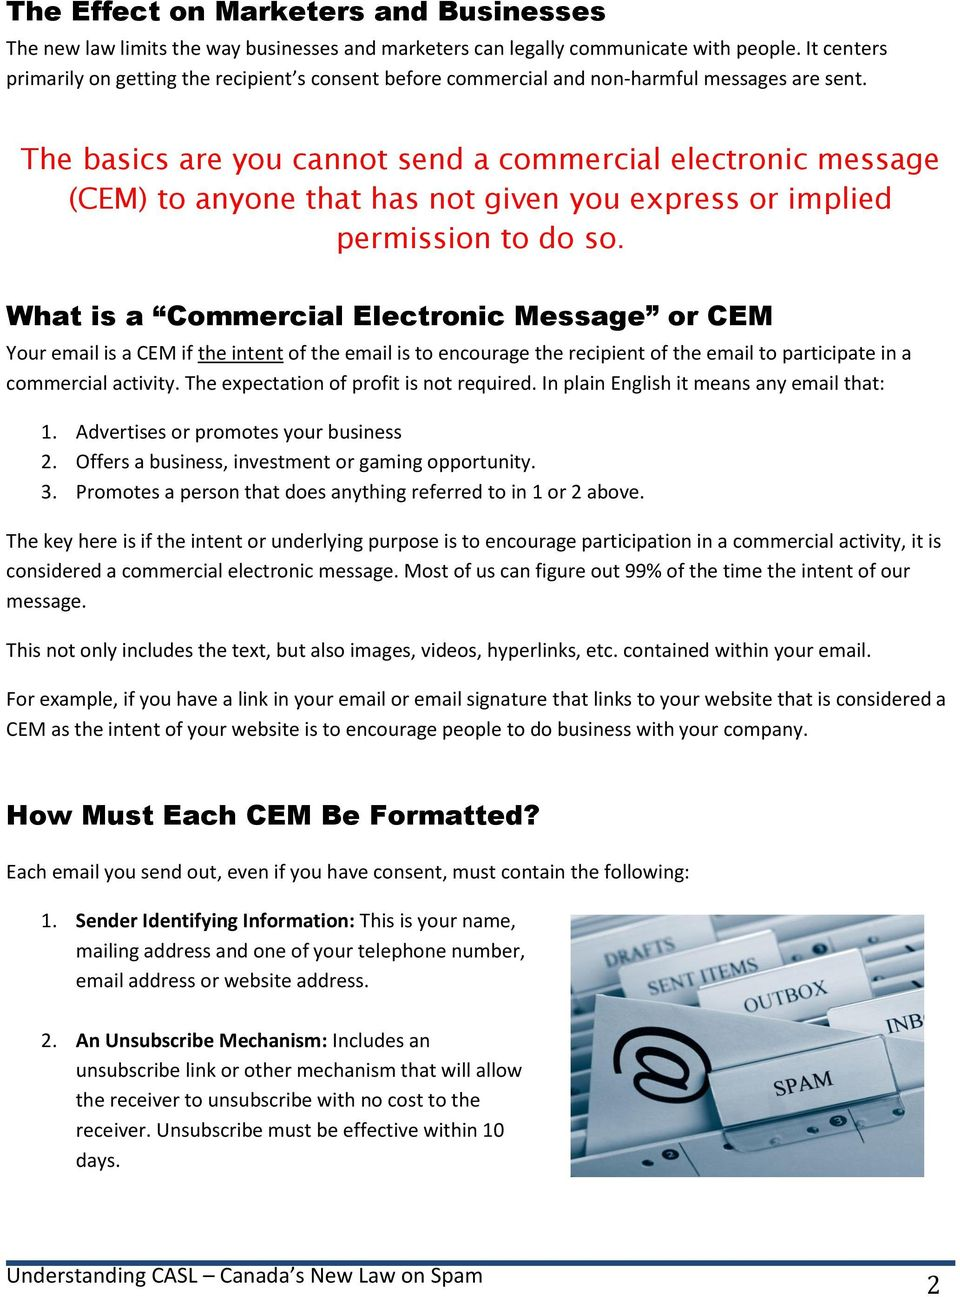 The basics are you cannot send a commercial electronic message (CEM) to anyone that has not given you express or implied permission to do so.